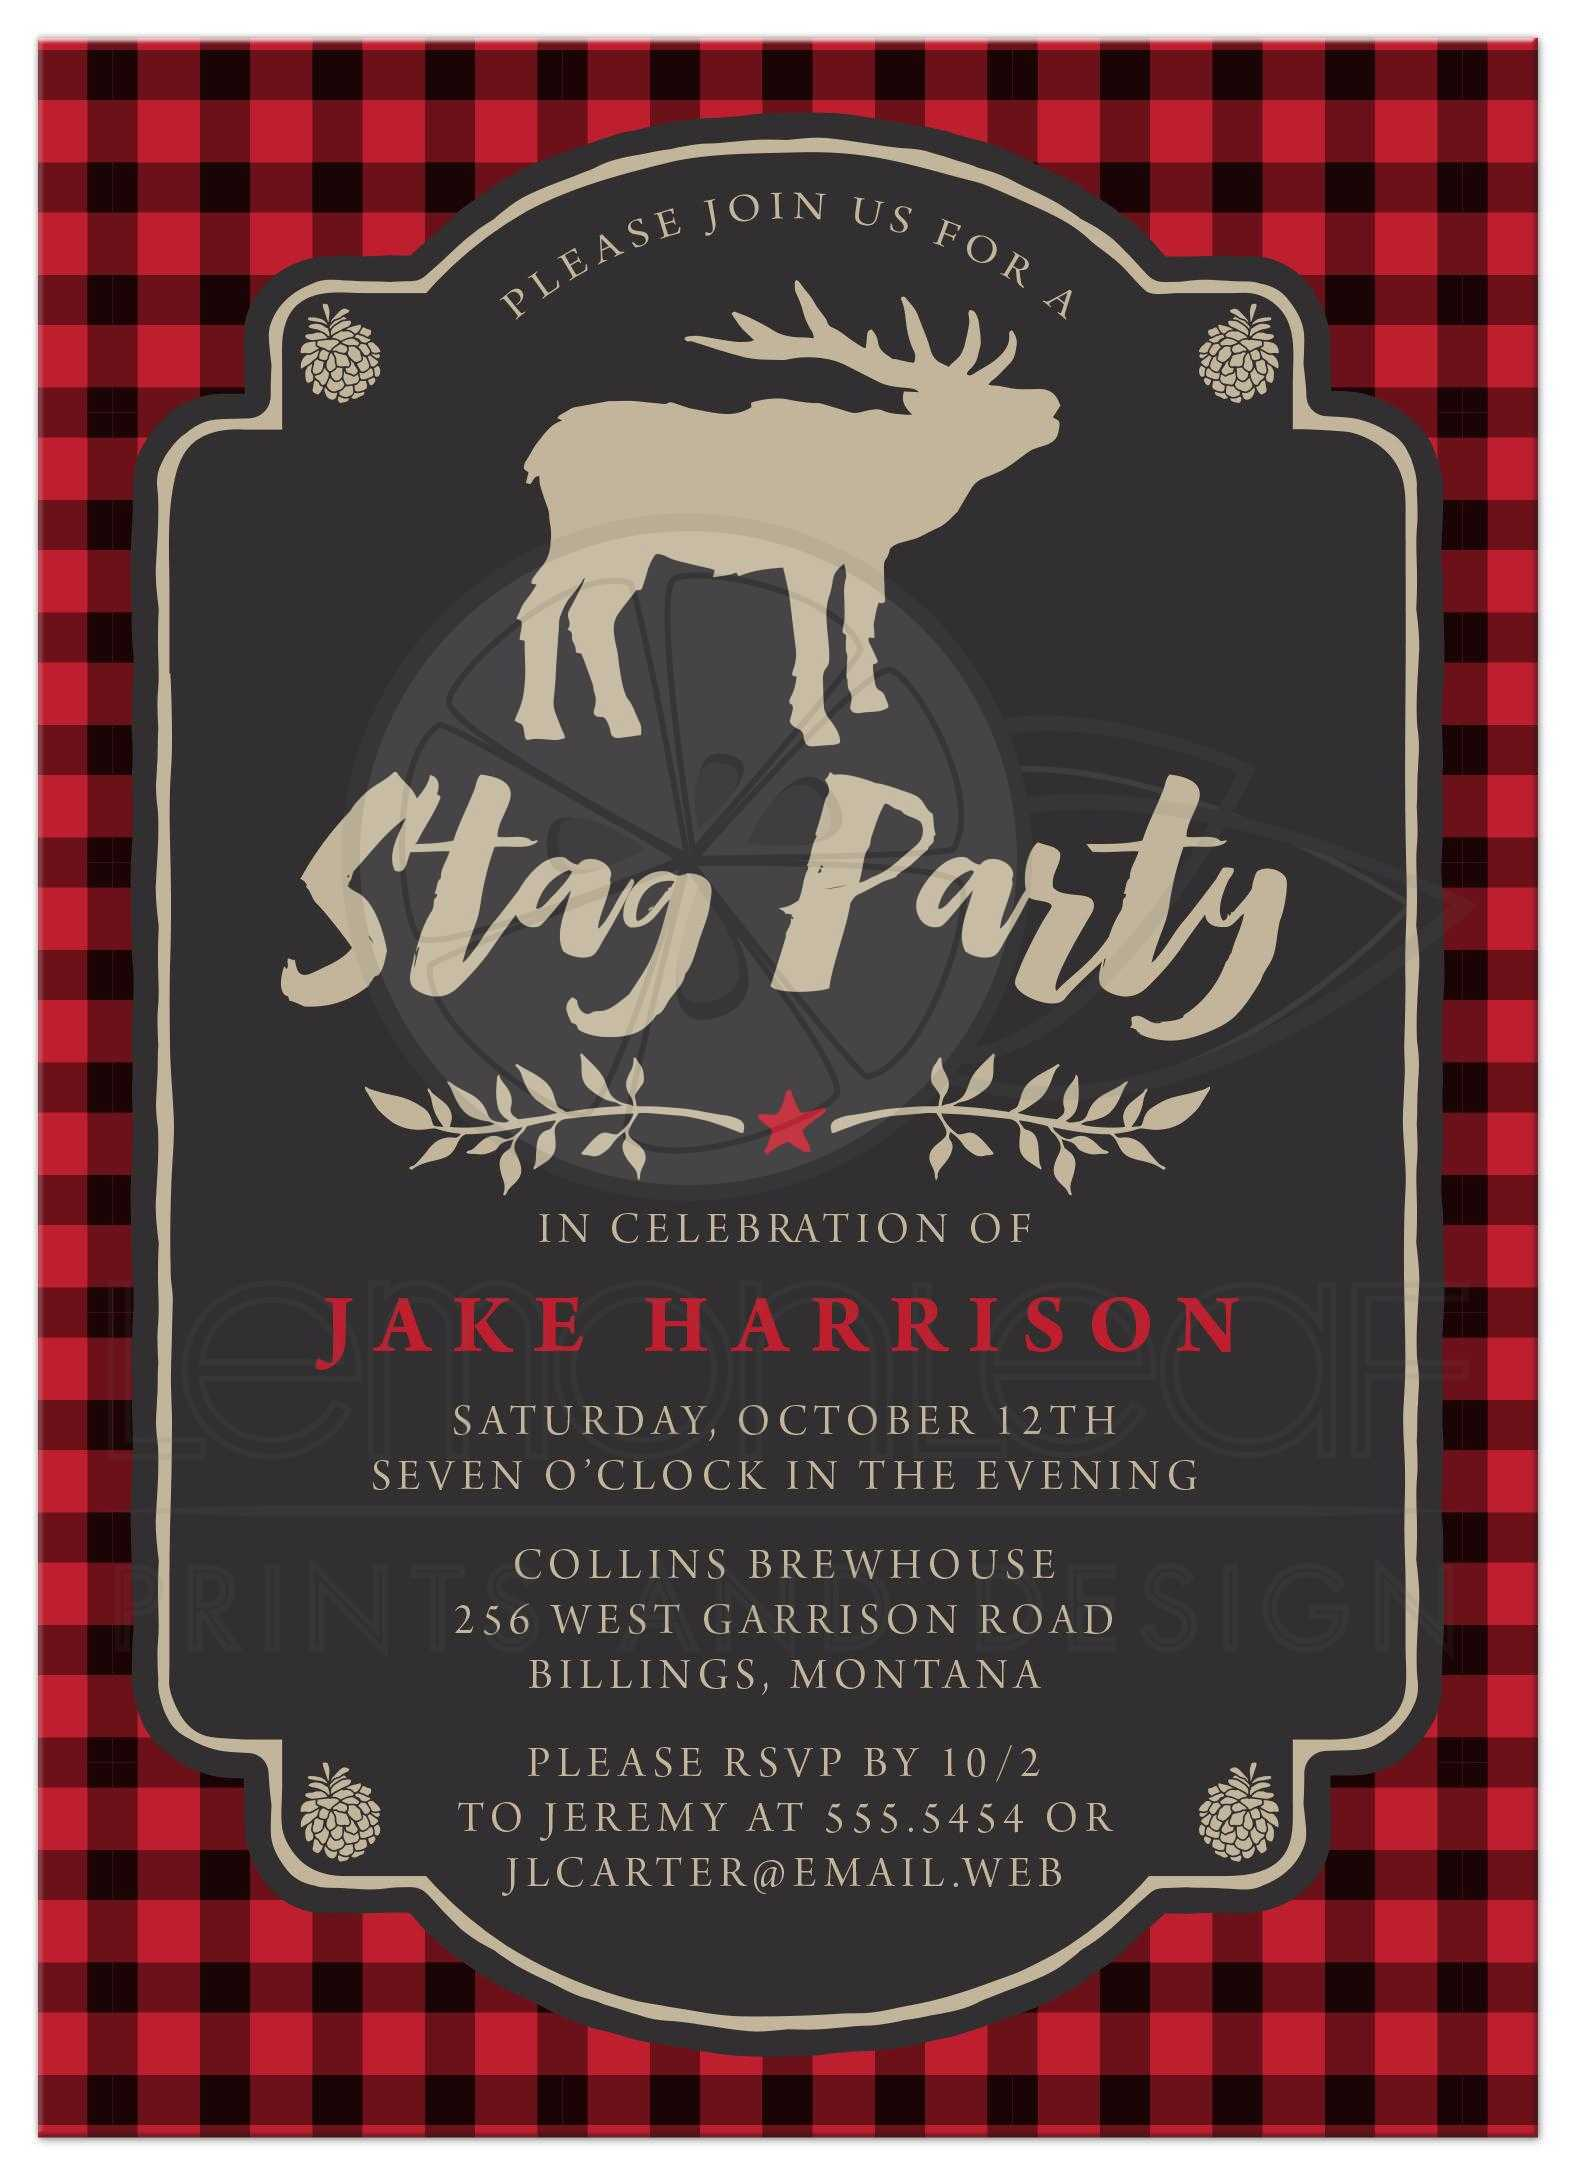 Bachelor party invitations rustic red black plaid stag party rustic red black plaid stag bachelor party invitations front monicamarmolfo Choice Image